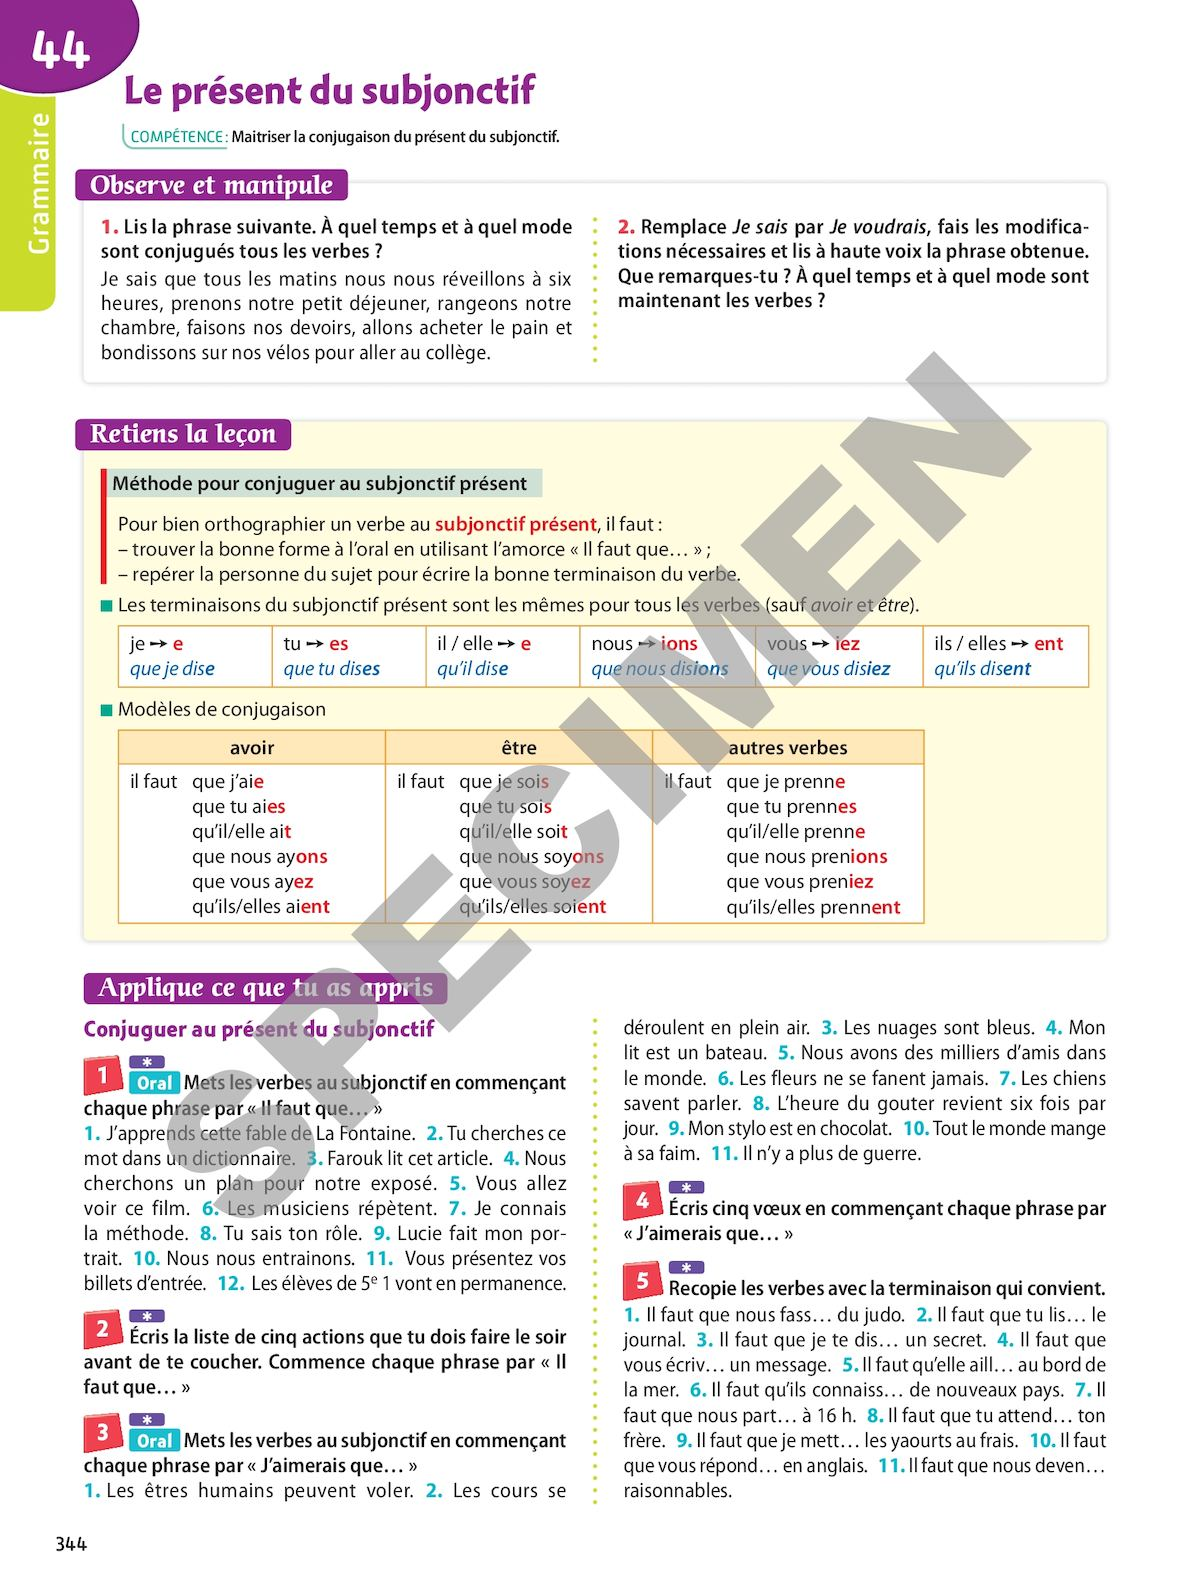 Page 348